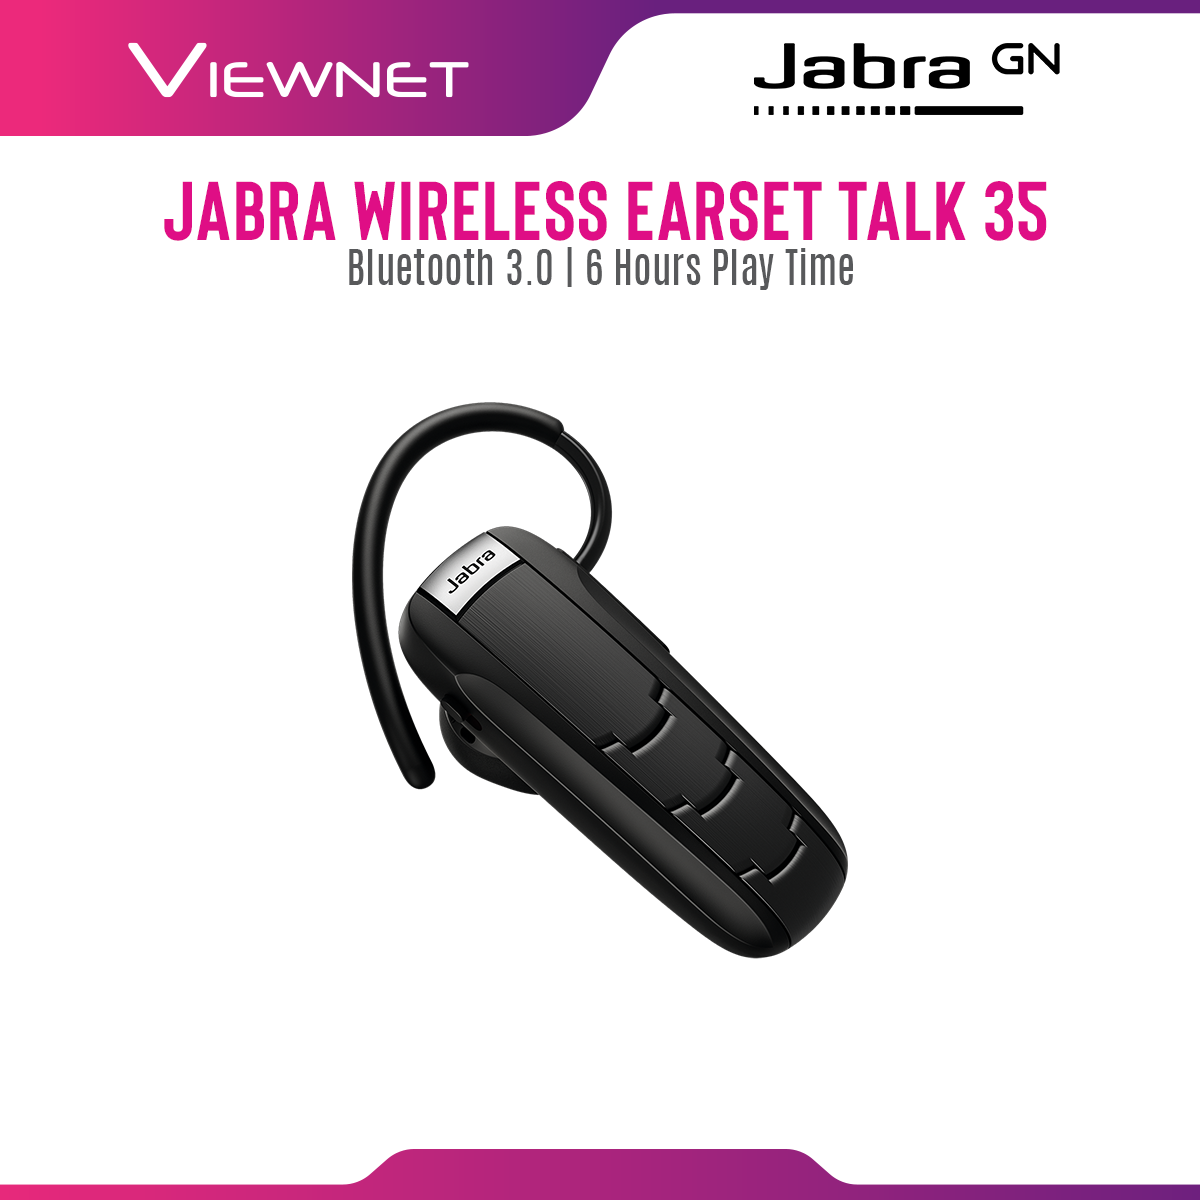 Jabra Wireless Headset Talk 35 with Bluetooth 3.0 Connection, 6 Hours Play Time, HD Voice, Noise Cancellation, Long Lasting Calls